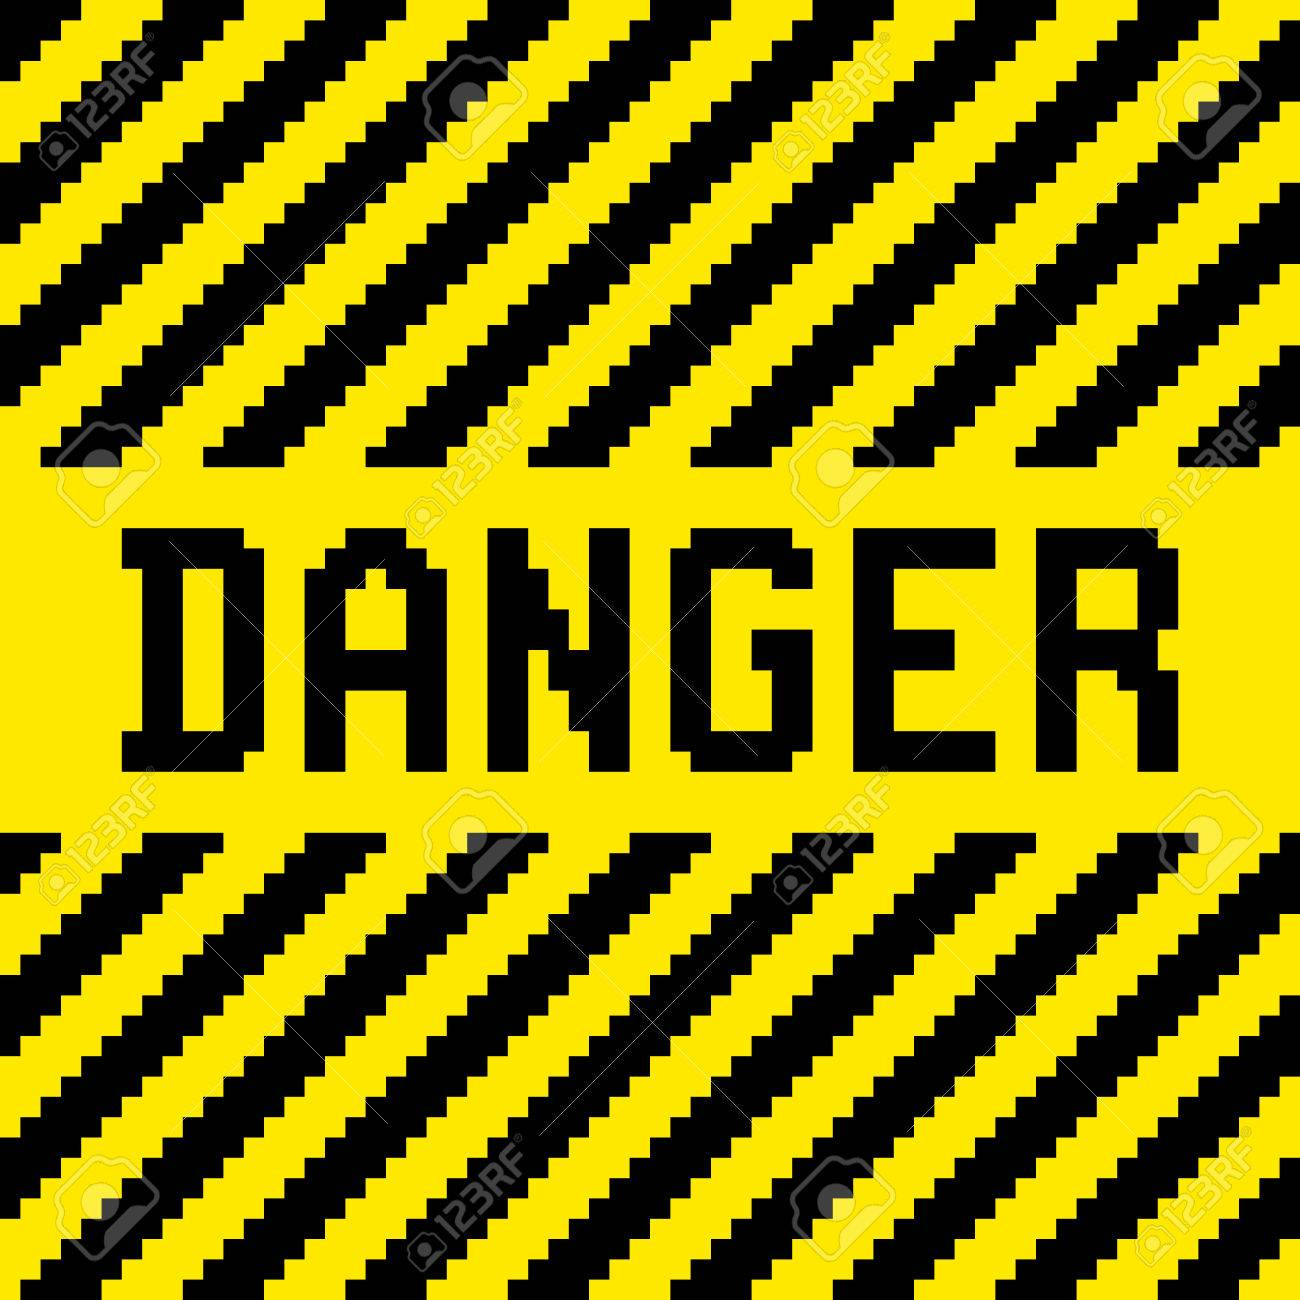 Danger sign with black and yellow diagonal warning stripes, in a pixel-art style. Layered EPS8 vector Stock Vector - 59105613